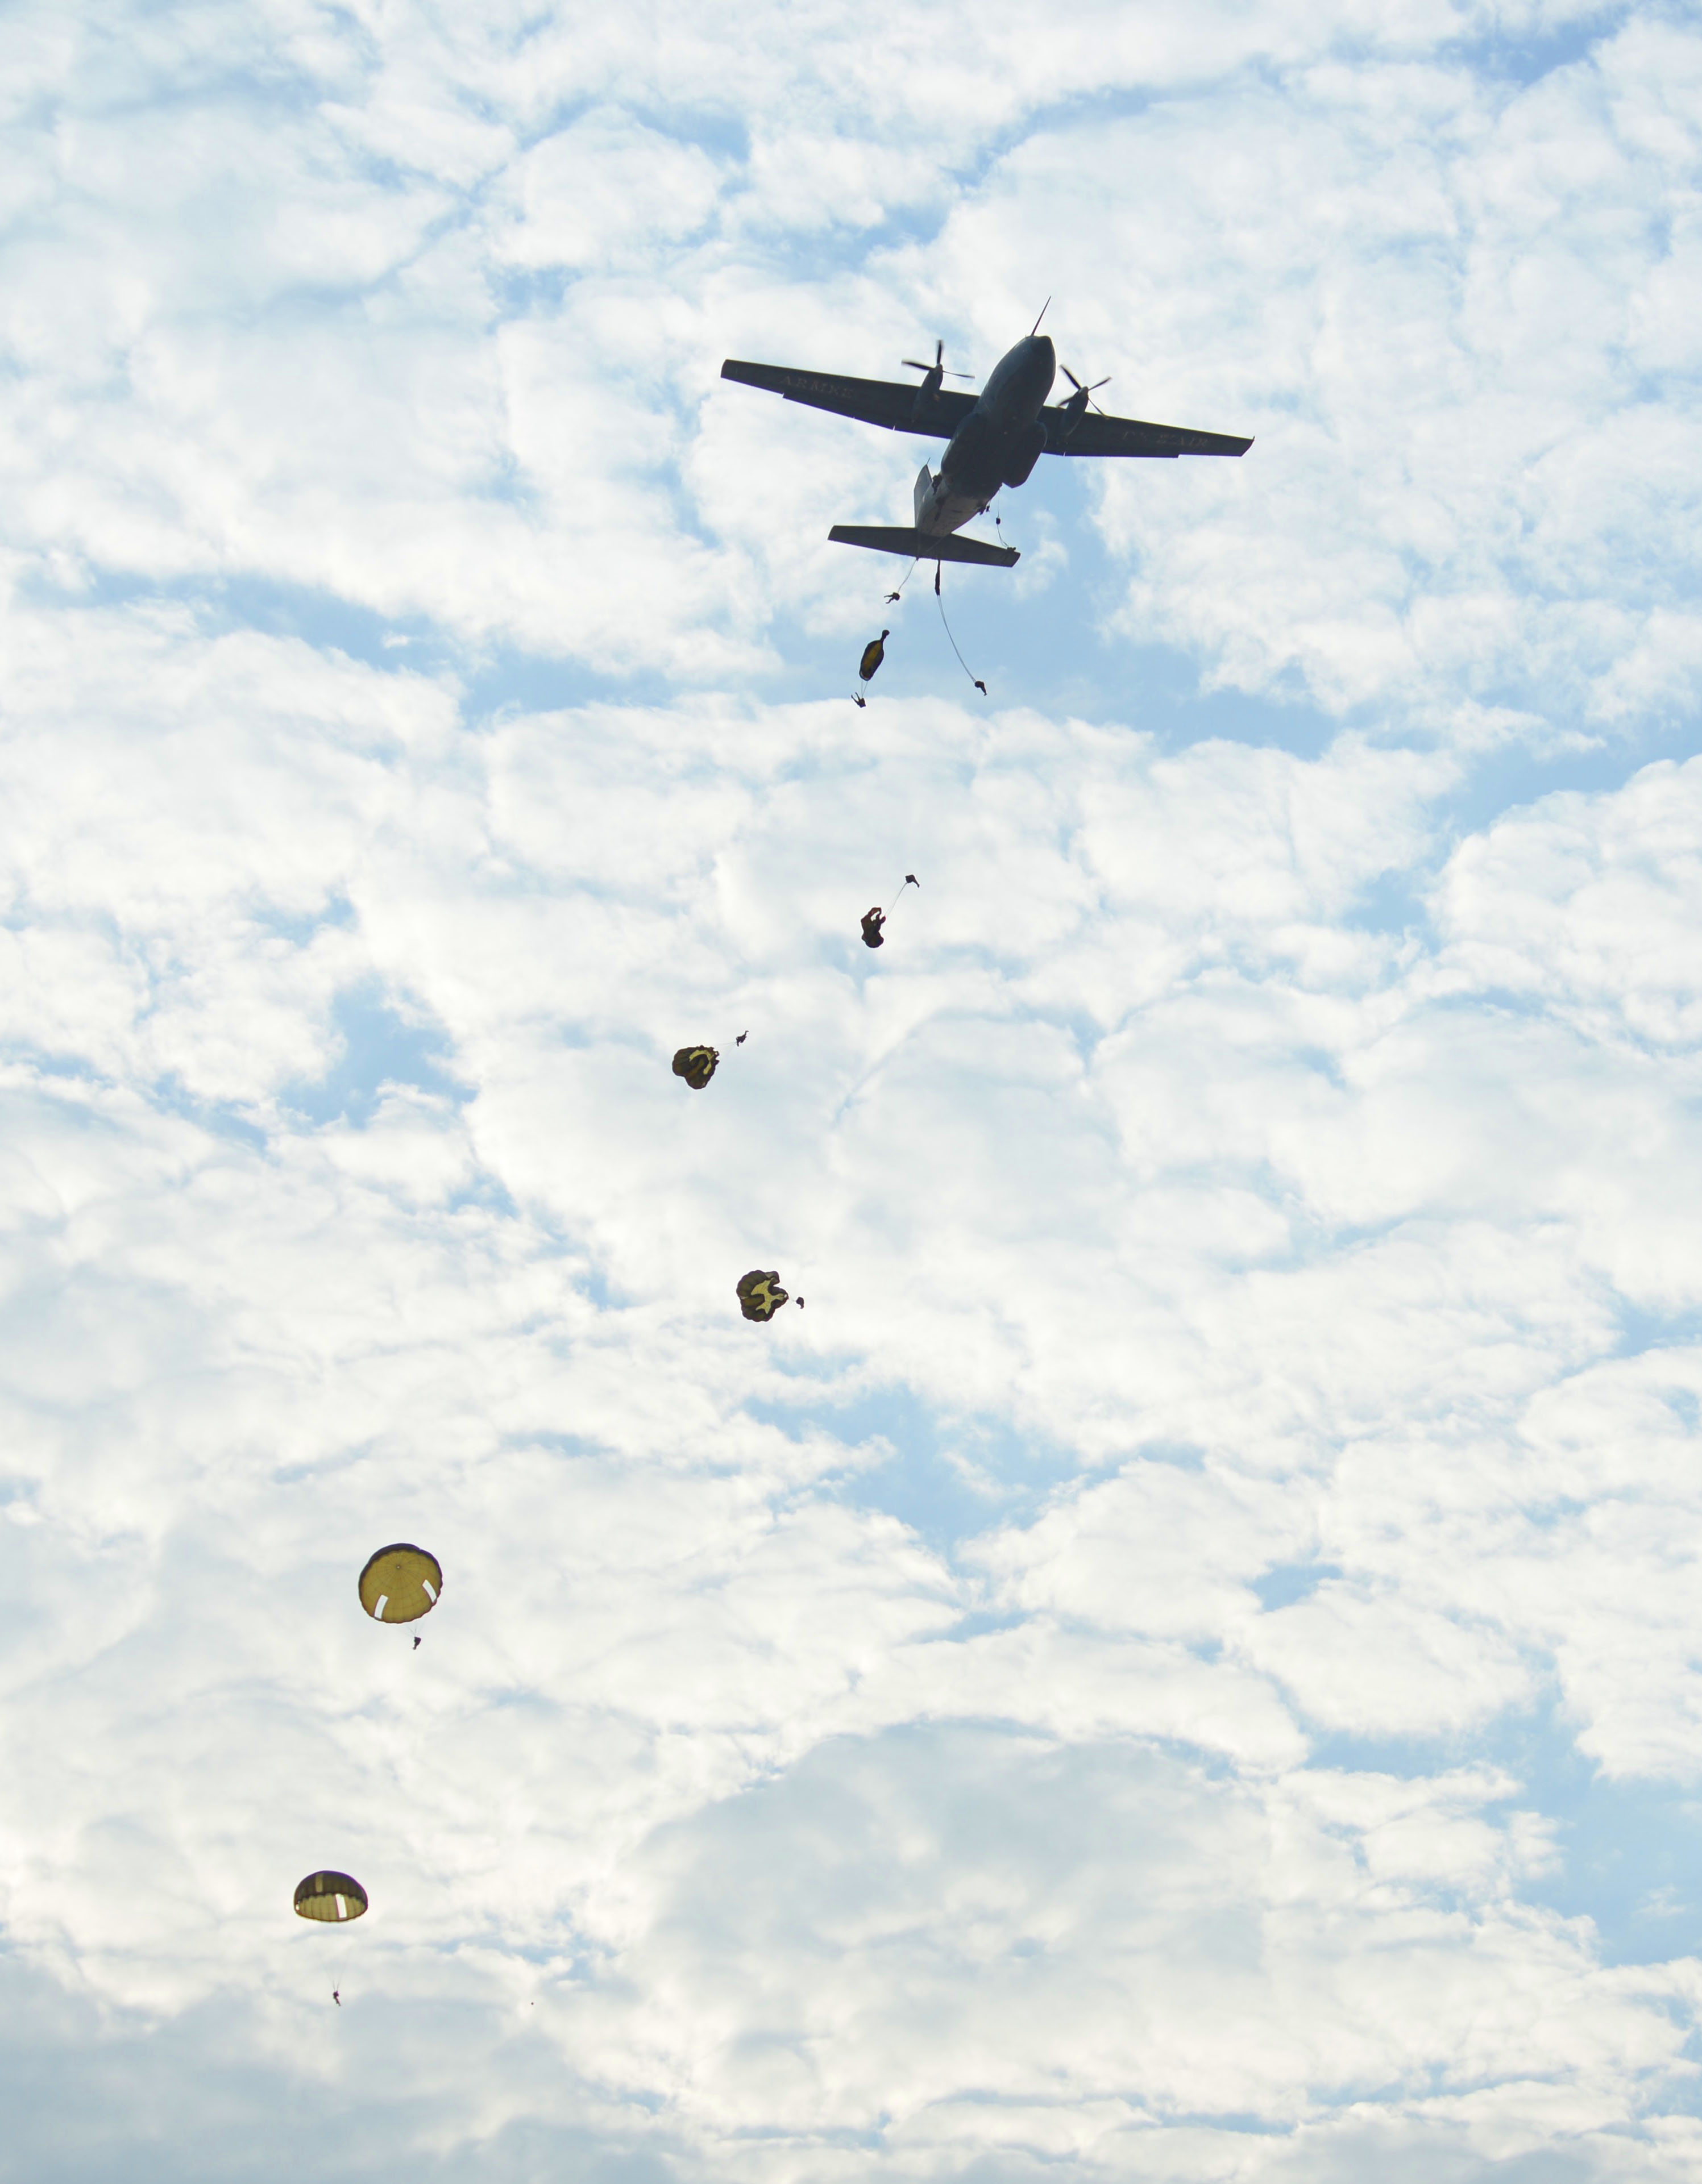 Military members from the U.S. Army, Djibouti Armed Forces, and French military kick off a St. Michel's Day celebration by jumping out of a C-160 Transall in Djibouti, Sept. 29, 2016. The paratroopers commemorated the day with a static line and high altitude low opening jump toward a designated drop zone. (U.S. Air Force photo by Staff Sgt. Benjamin Raughton)